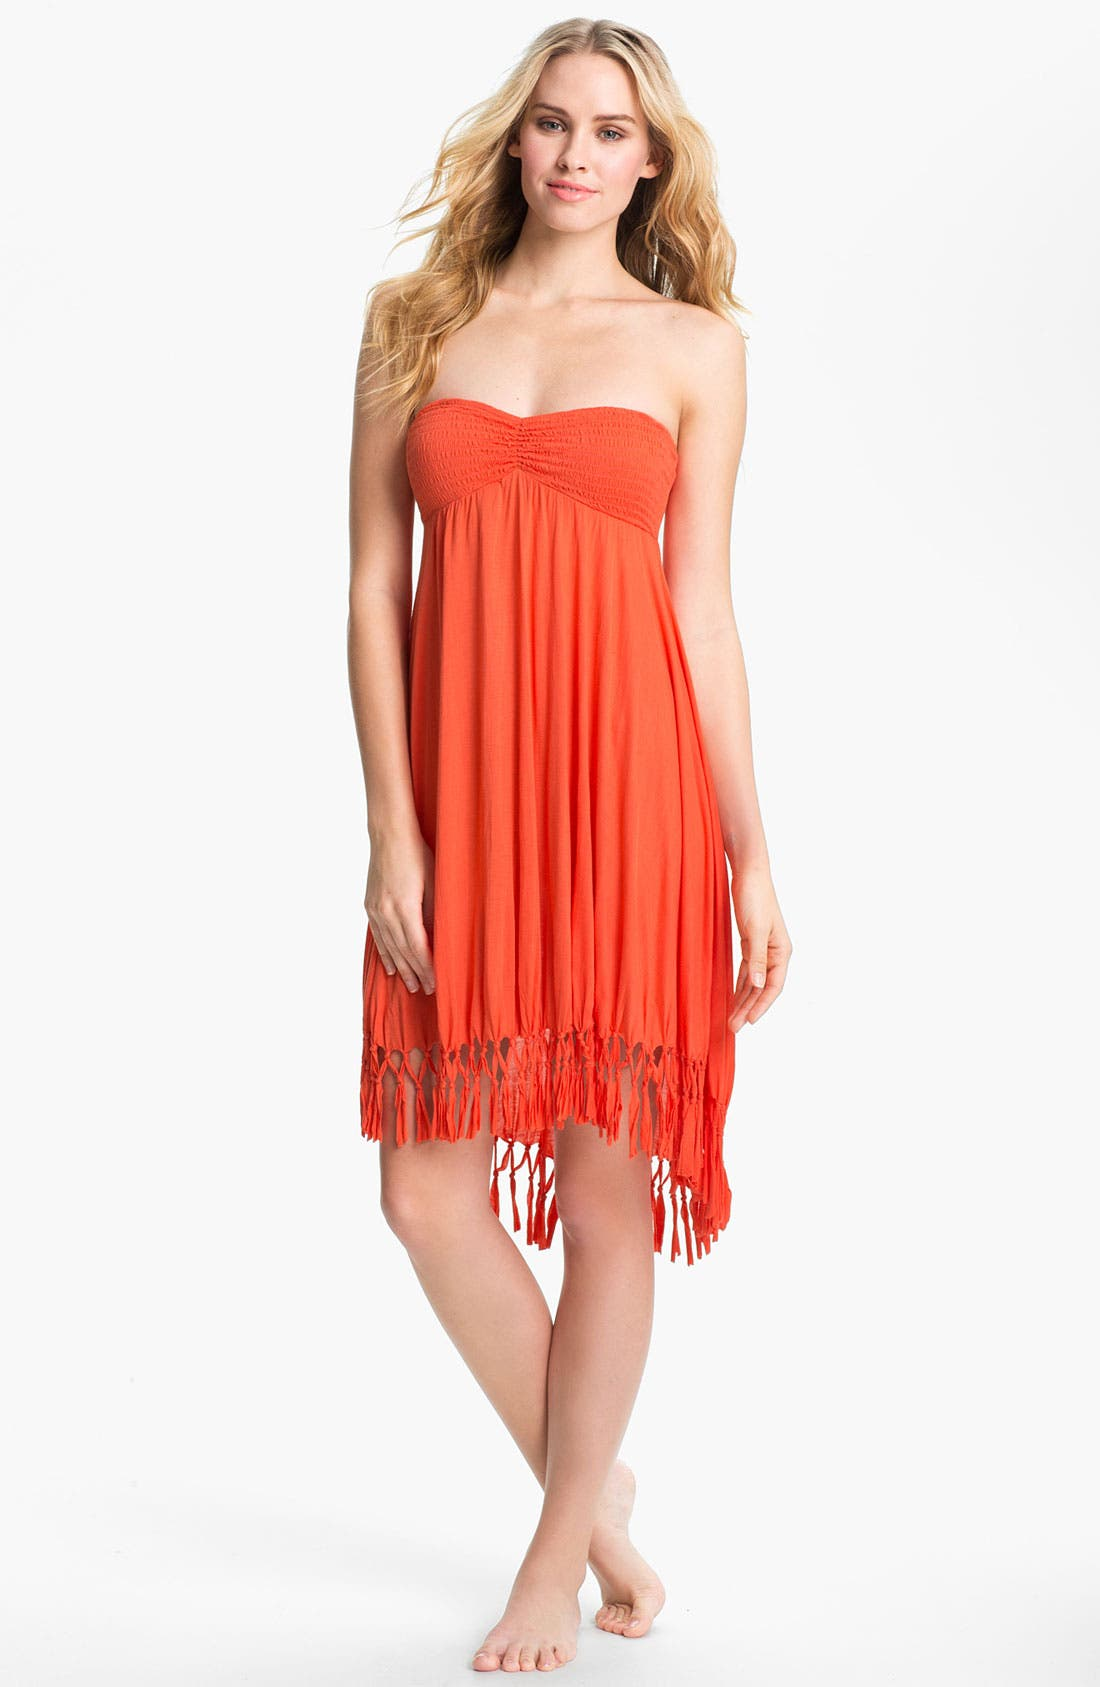 Main Image - Roxy 'Native Breeze' Cover-Up Dress